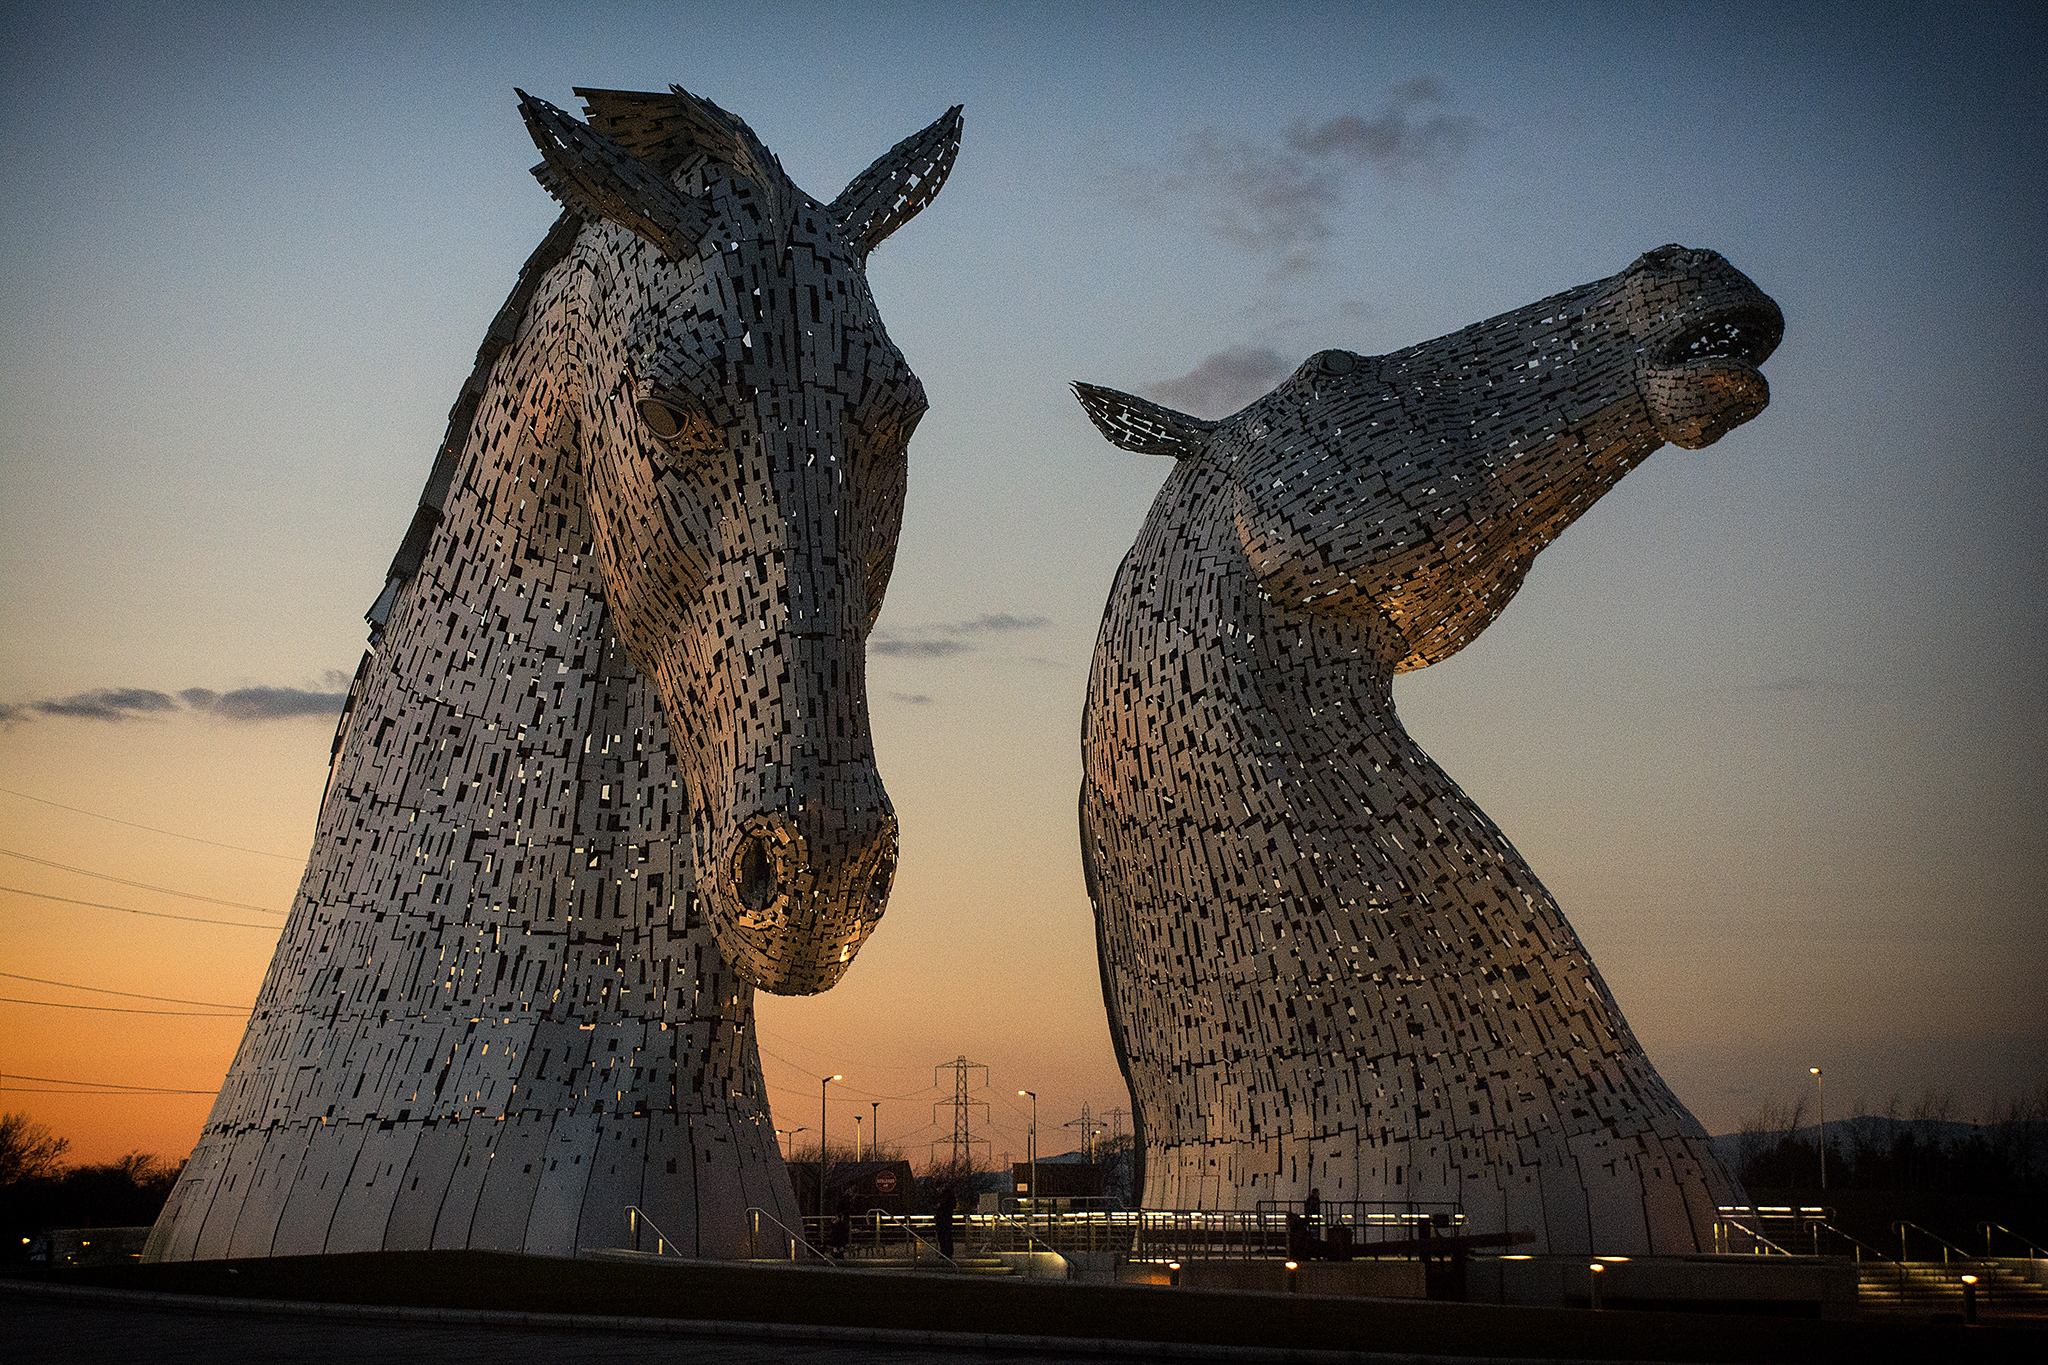 The Kelpies, Scotland, United Kingdom